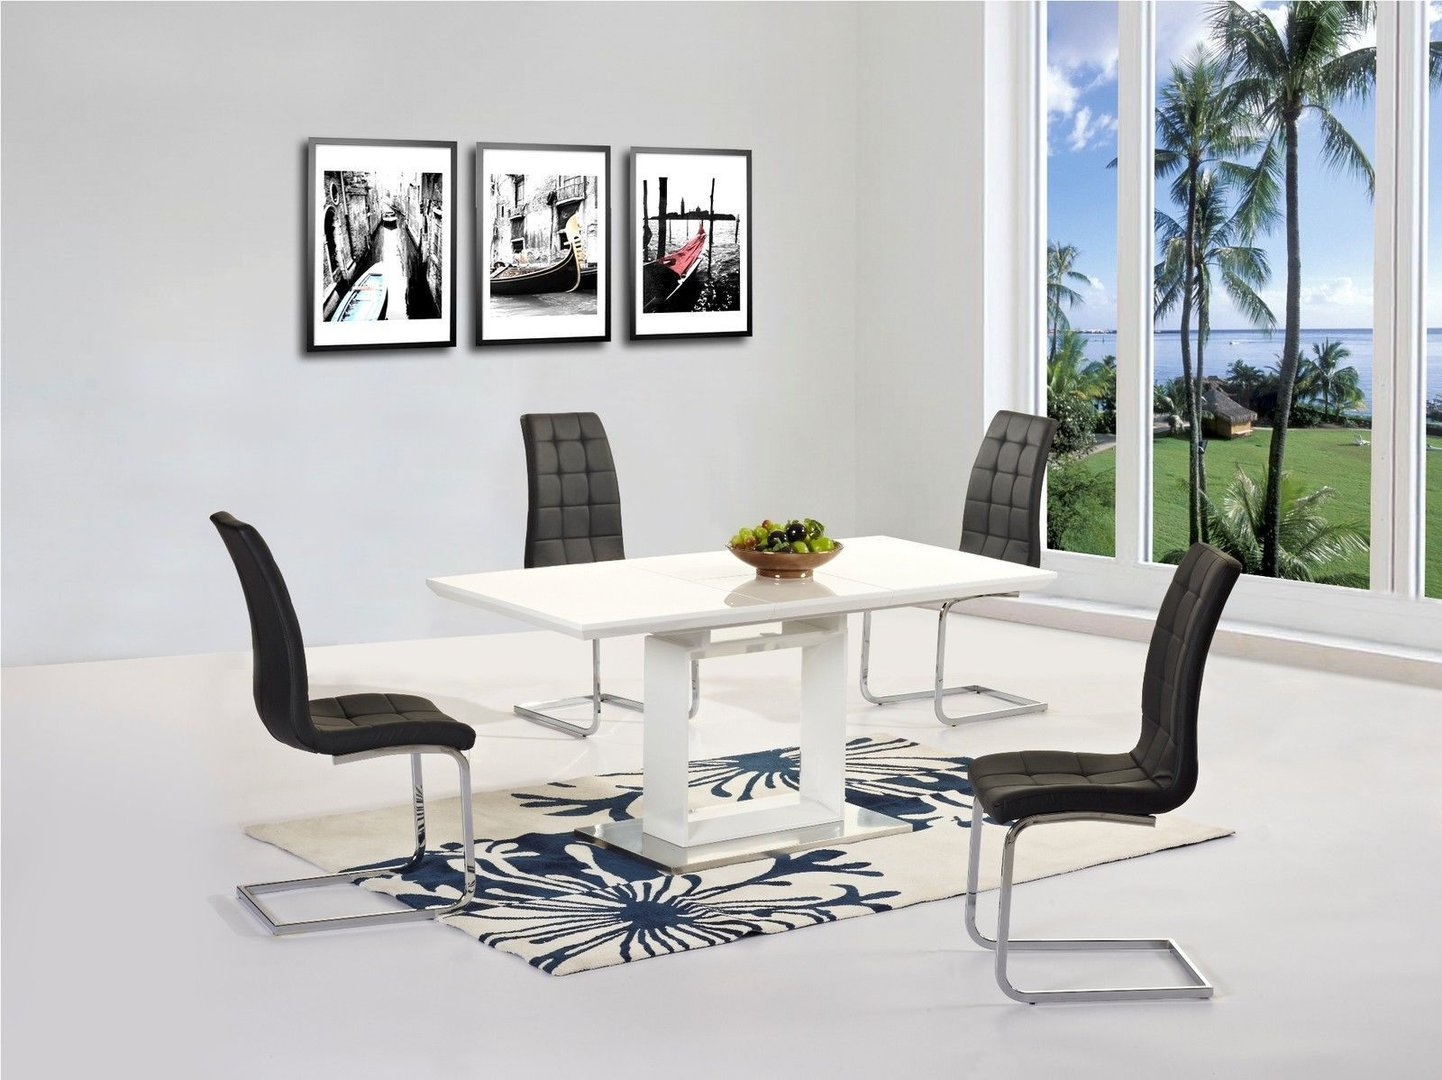 New White High Gloss Extending Dining Table And 6 Black Chairs